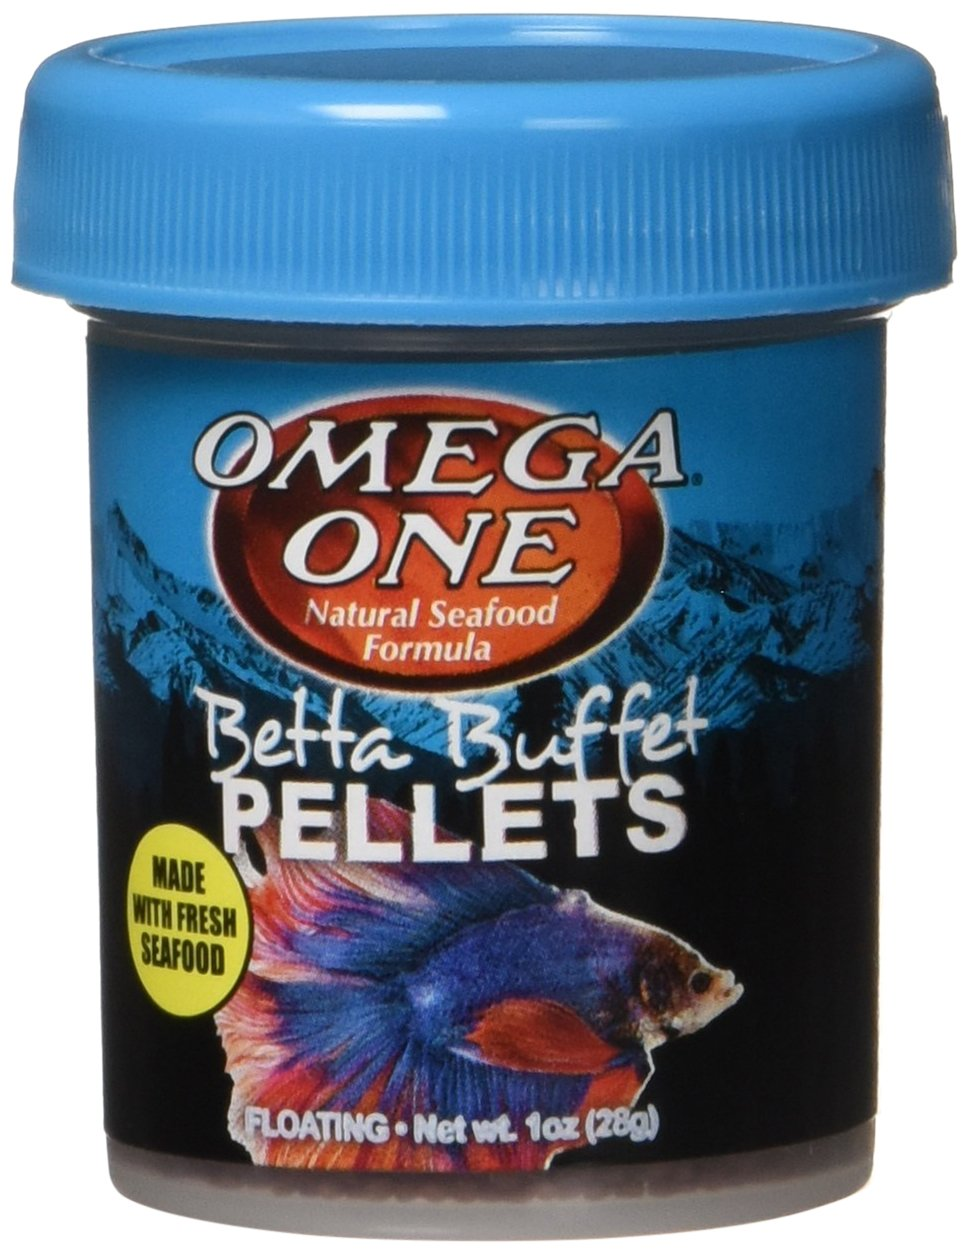 Omega One Betta Buffet Pellets Betta Food   1oz by Omega One